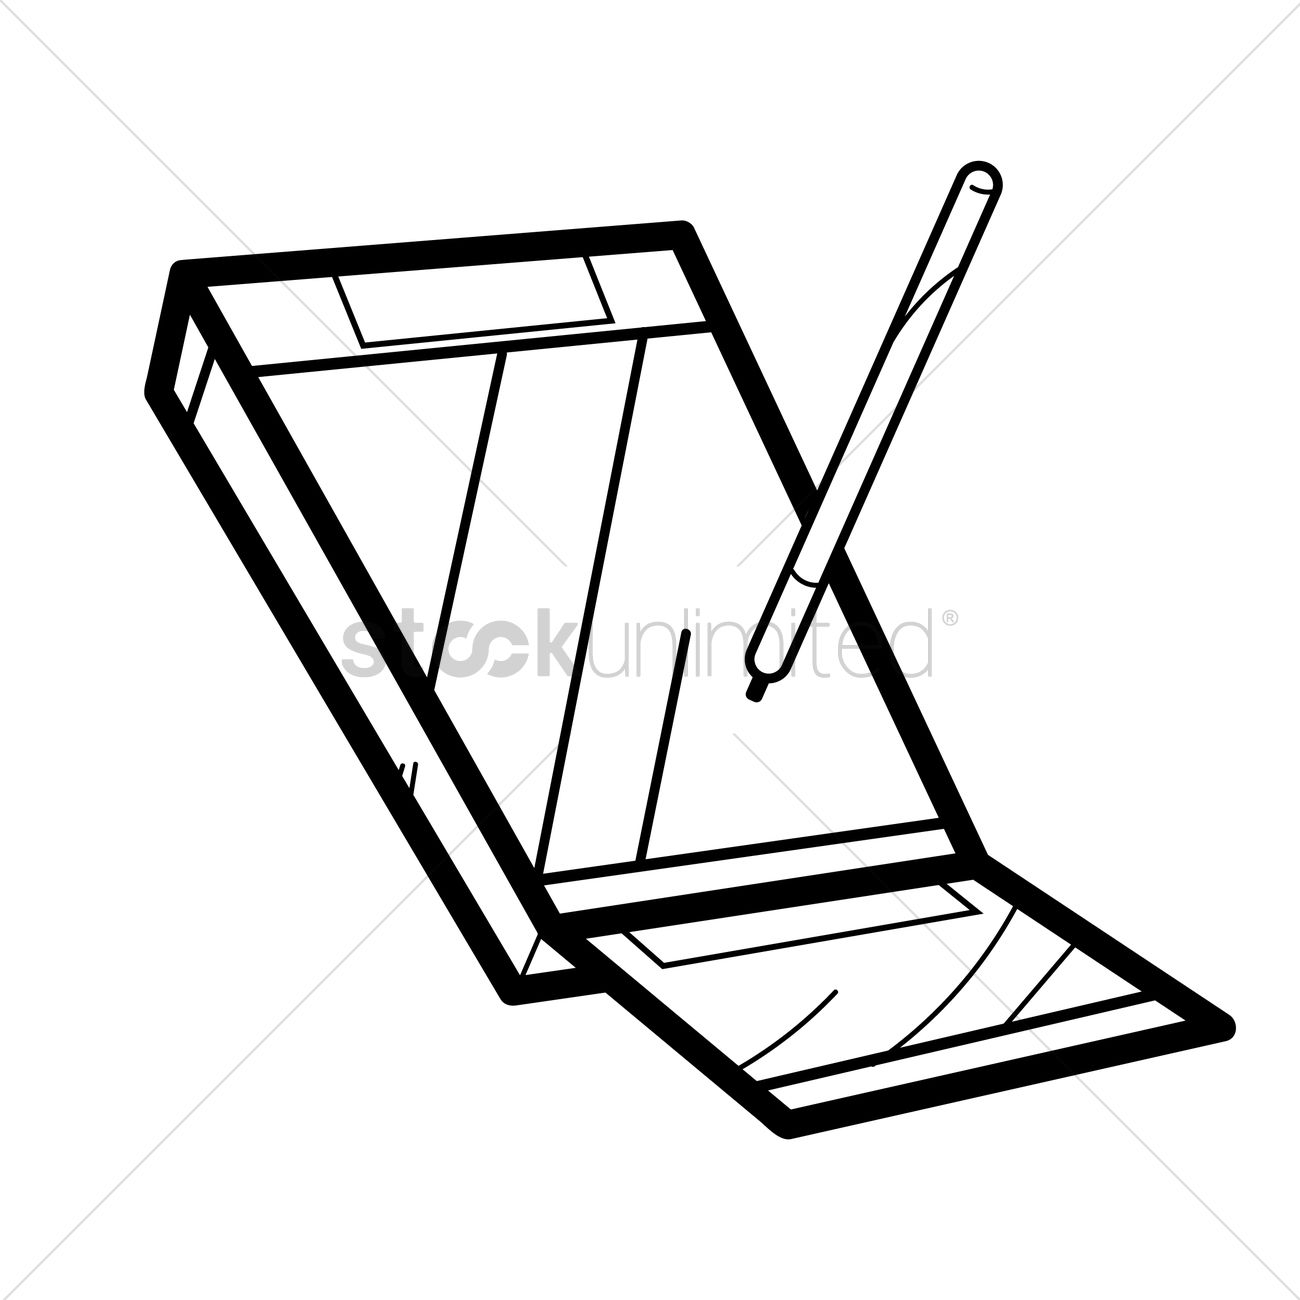 1300x1300 Free Mobile Phone Vector Image